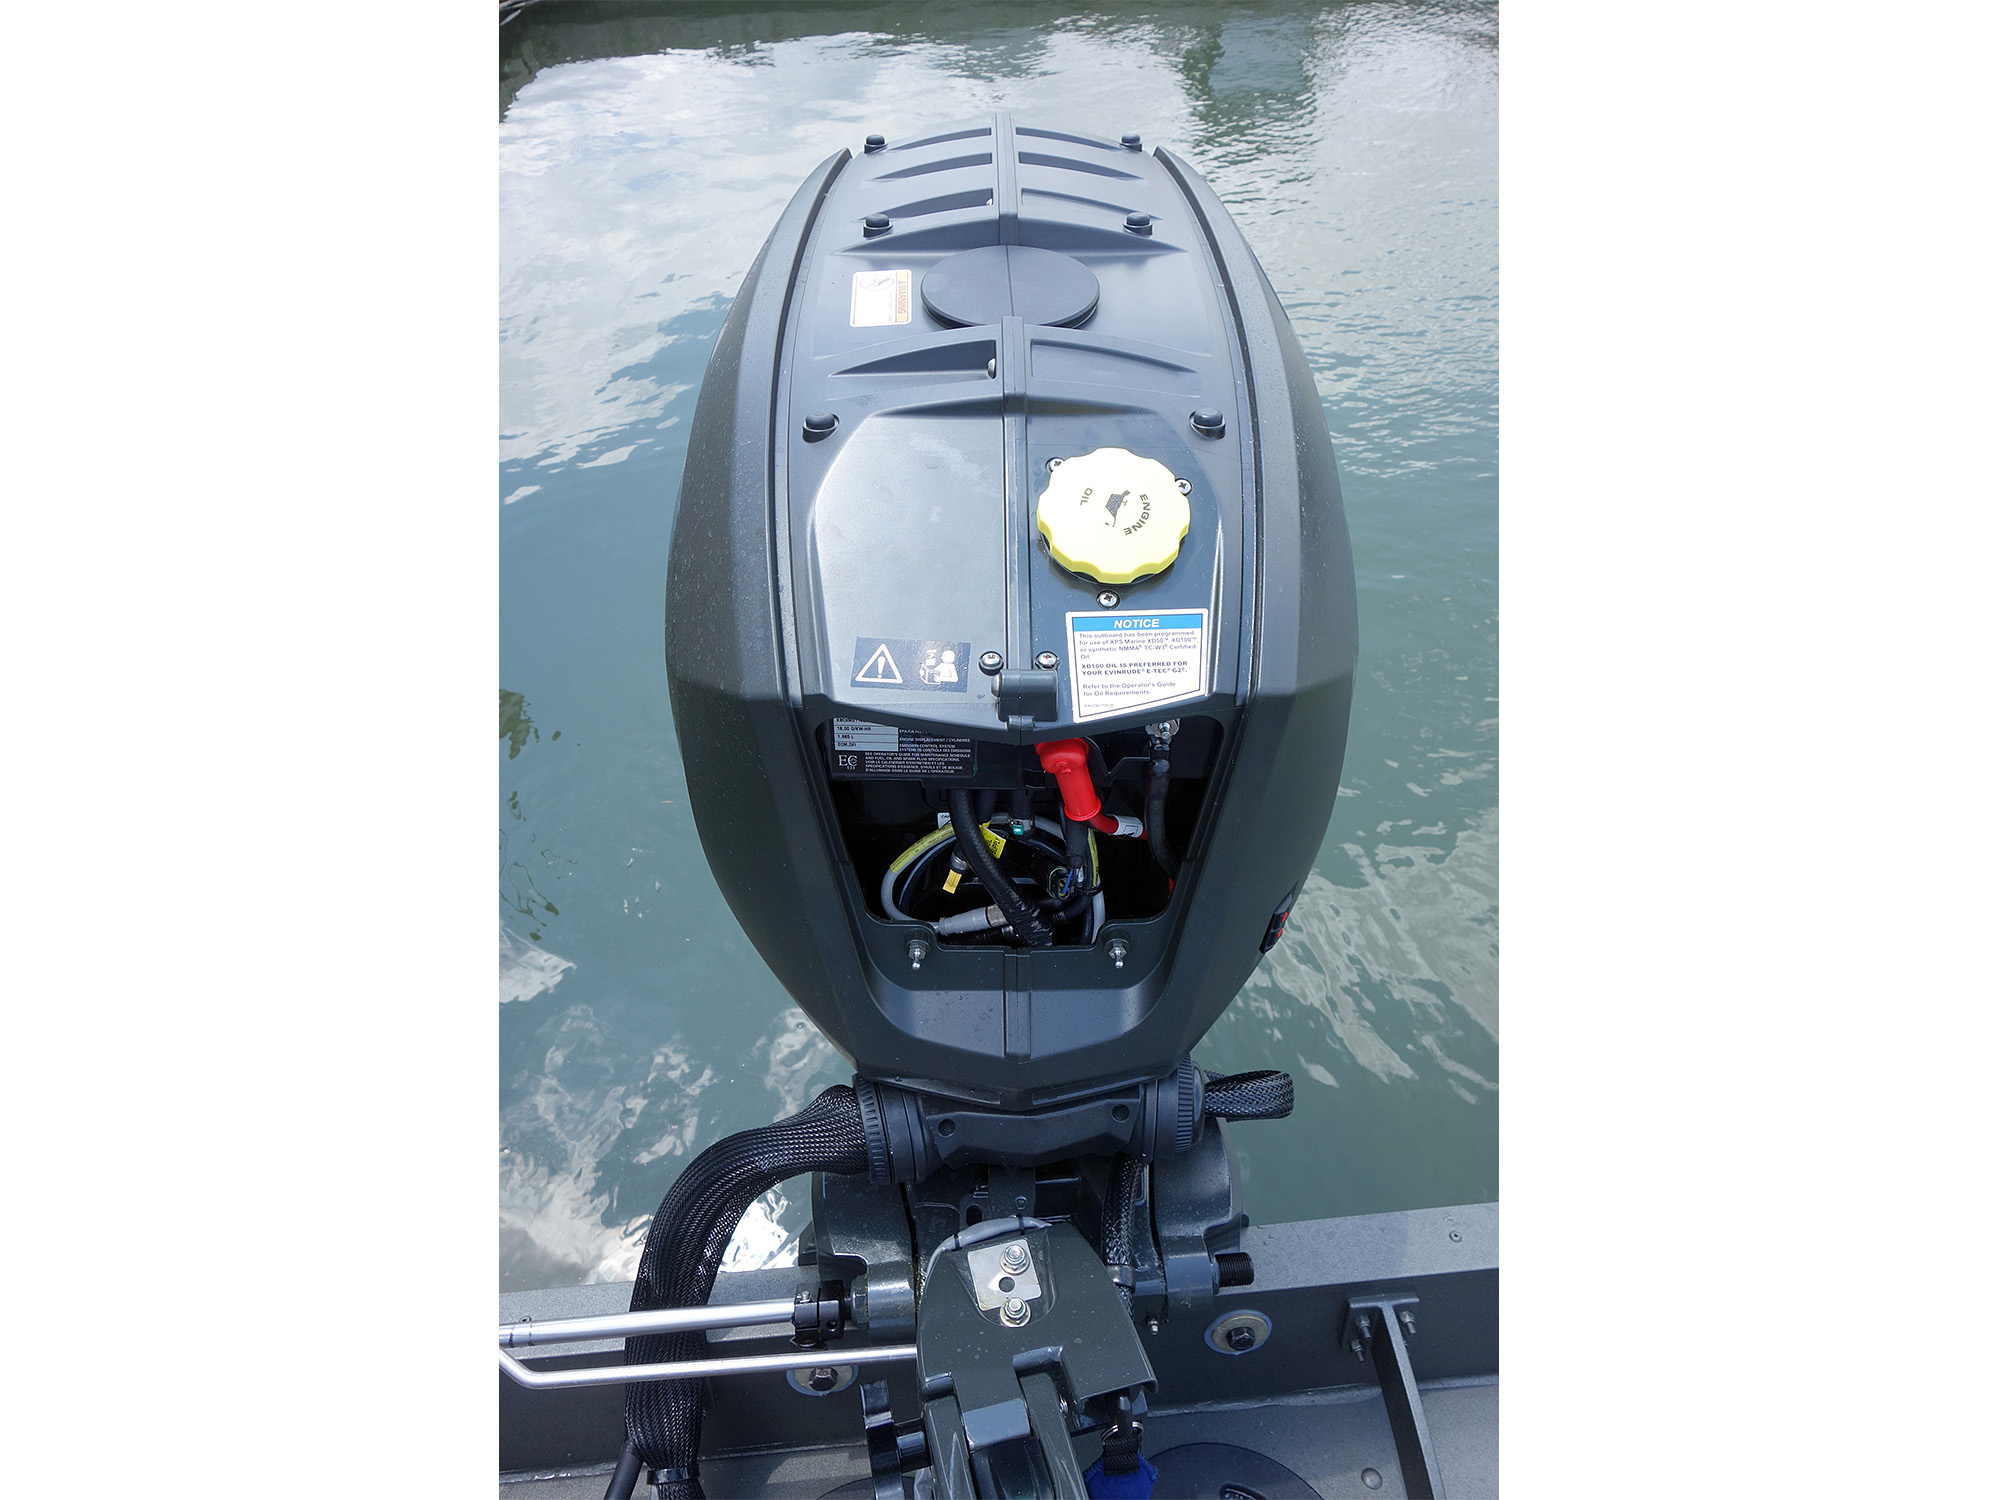 Evinrude Introduces the E-TEC G2 115, 140 and 150 hp